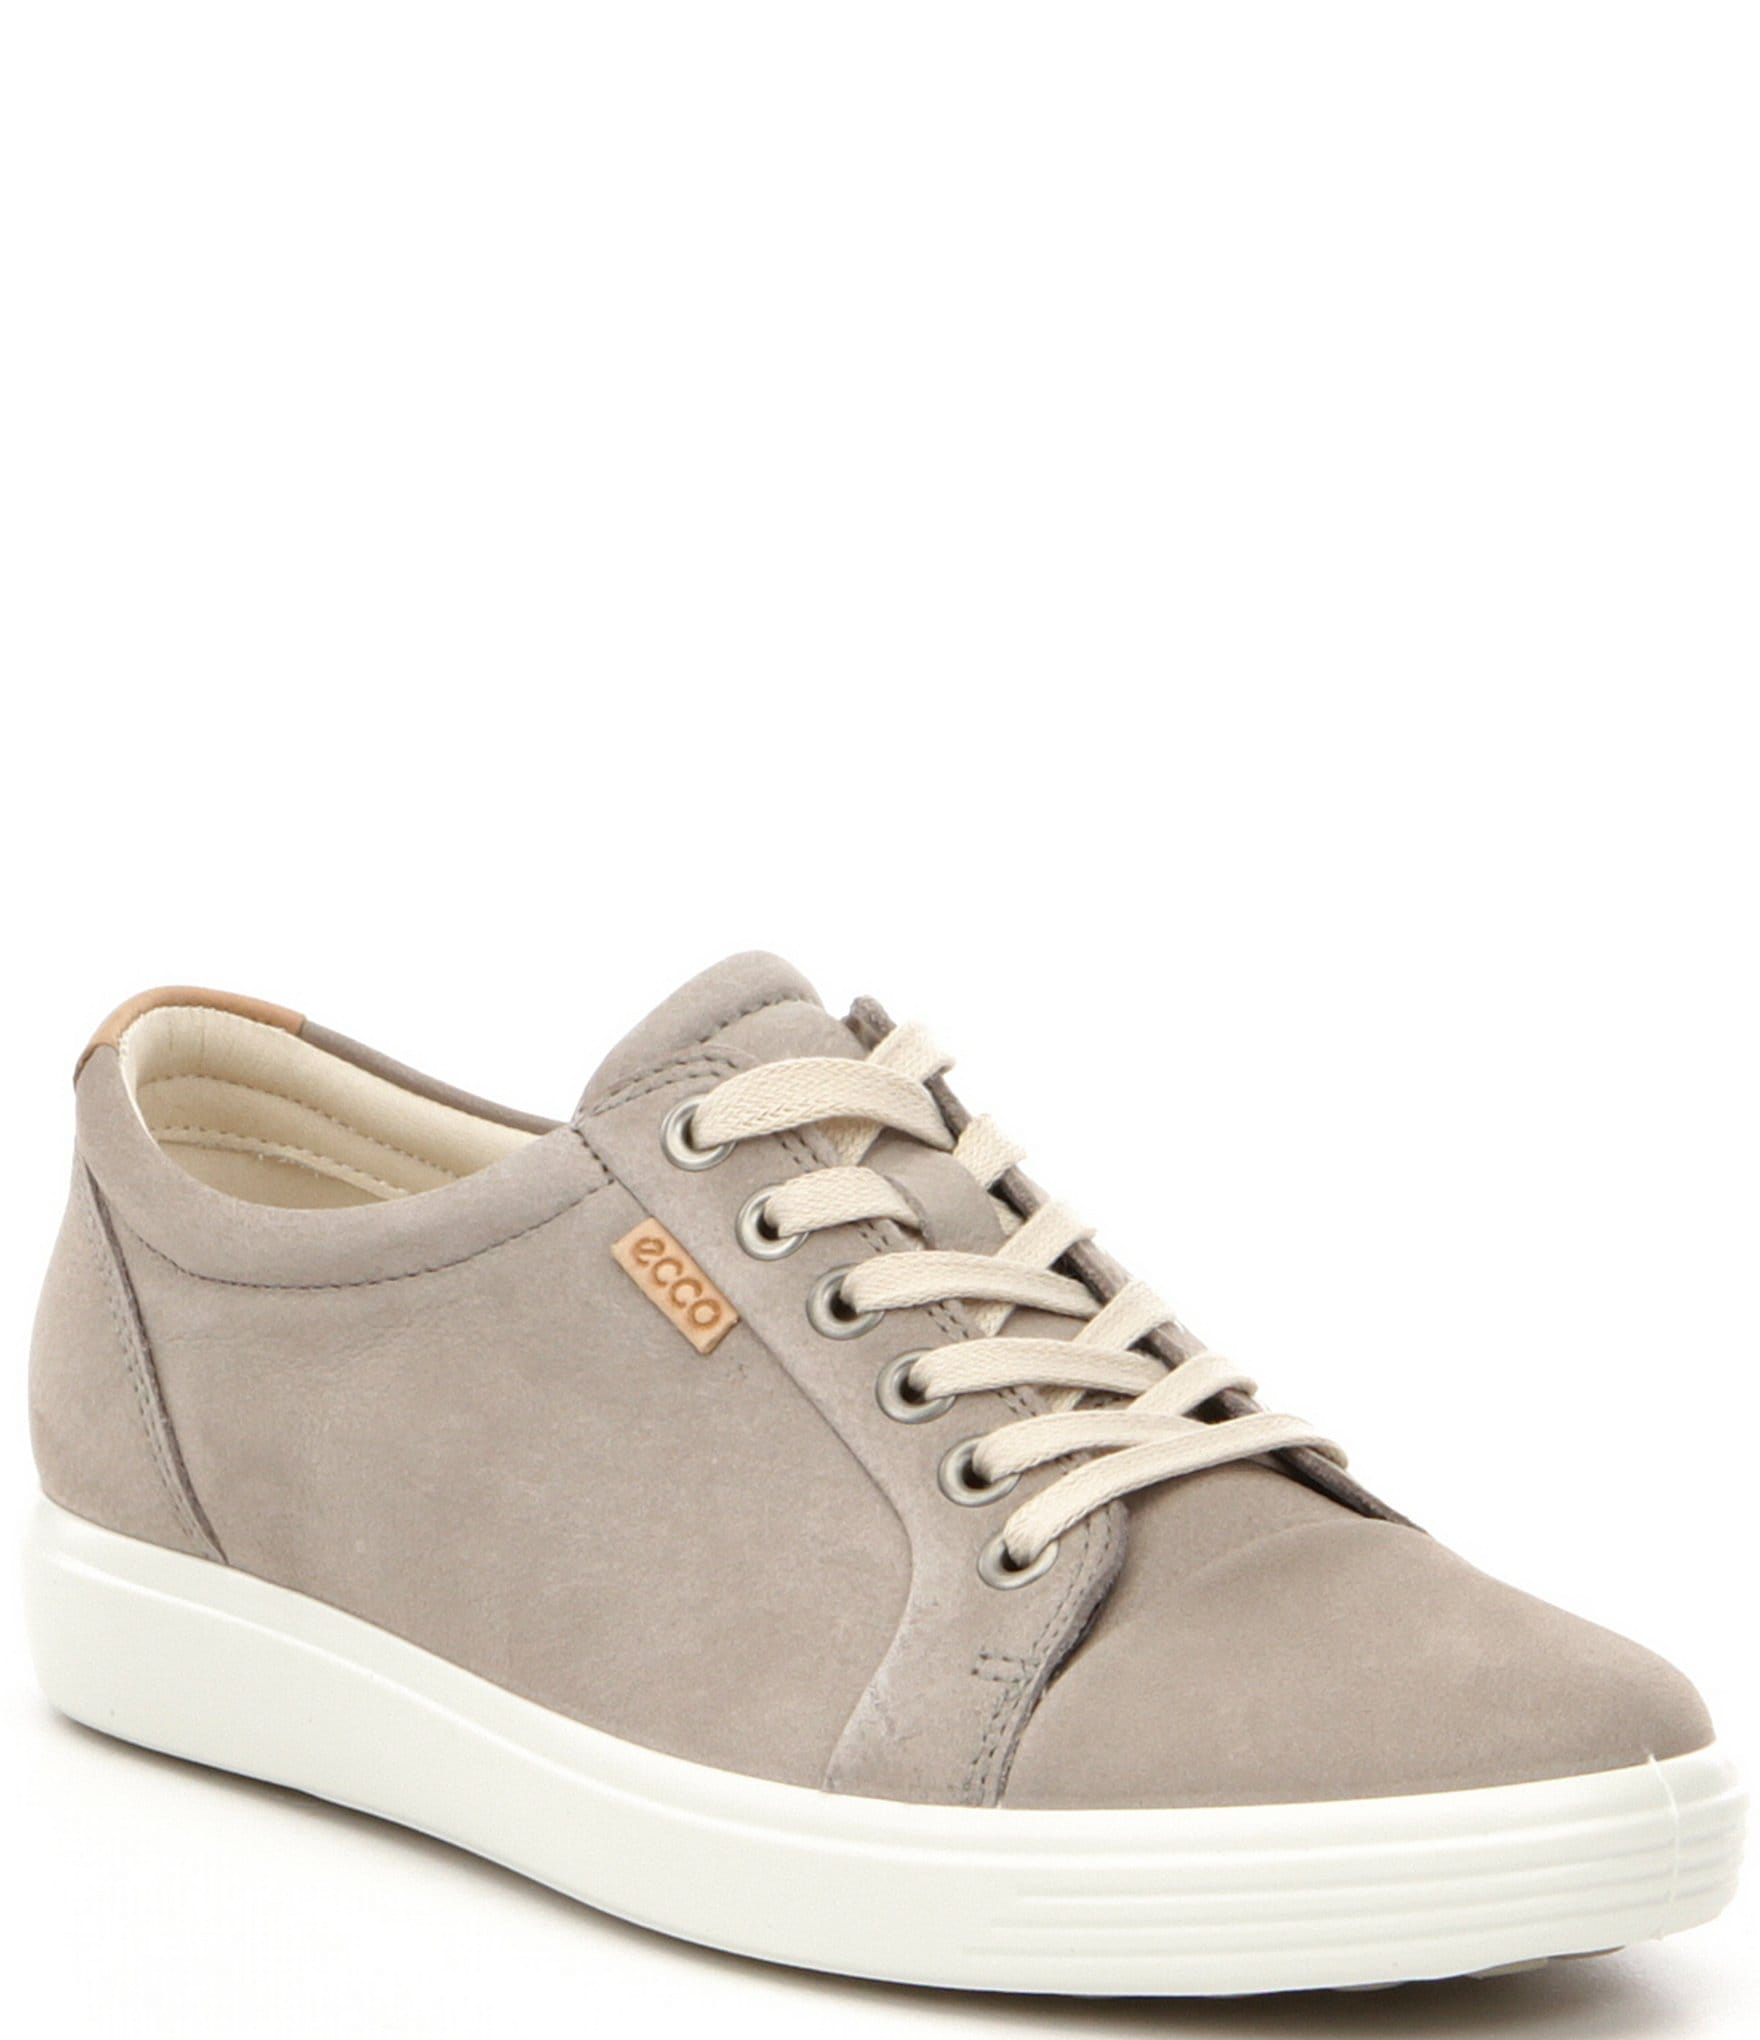 ECCO Soft 7 Suede Leather Lace-Up